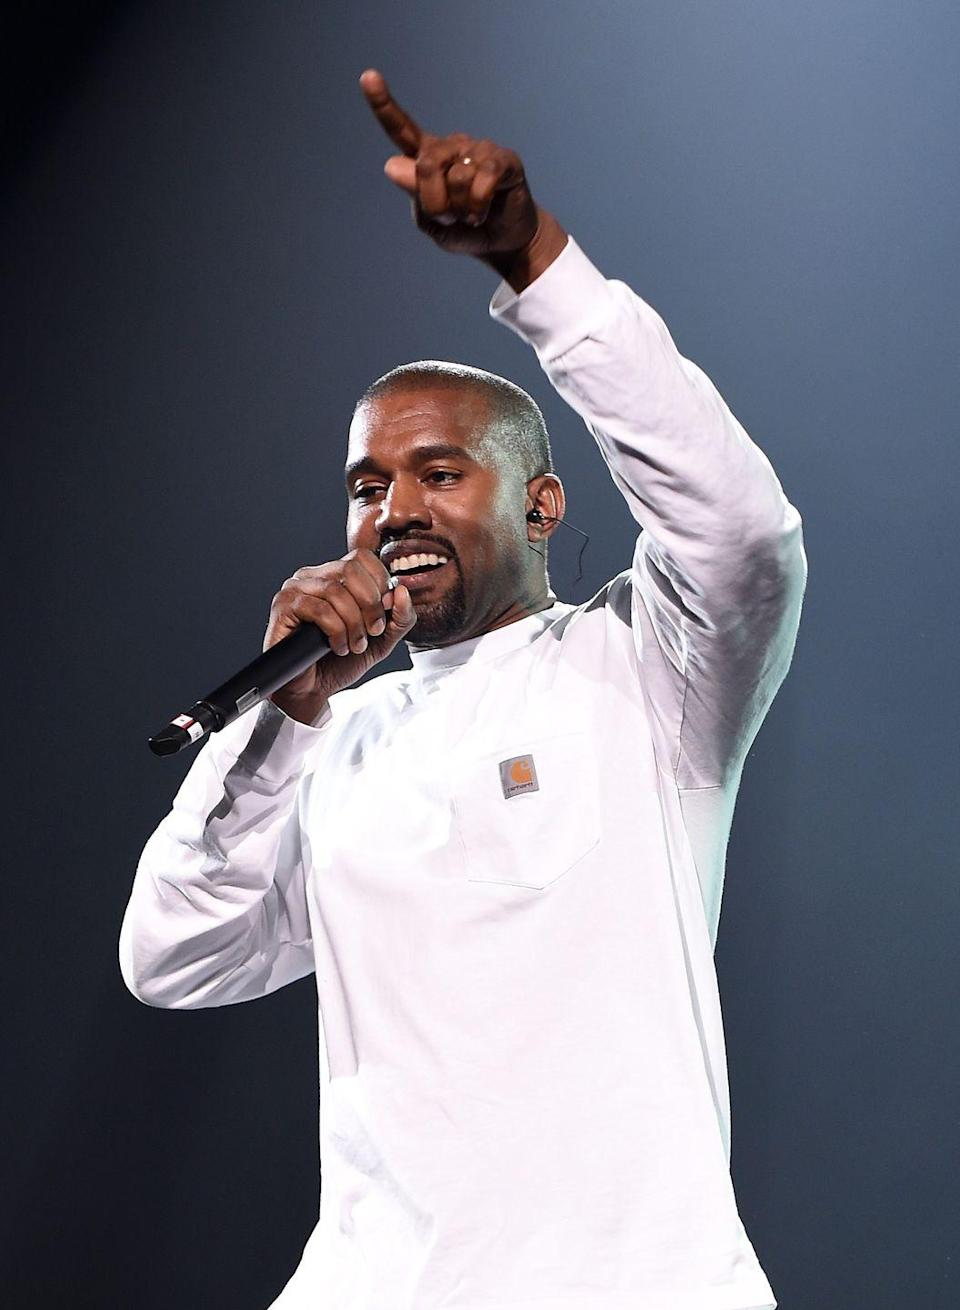 "<p>As a teen, Chicago native Kanye West worked at a Gap in the city. He wrote in an article for <em><a href=""https://www.papermag.com/kanye-west-in-his-own-words-1427550639.html?rebelltitem=3#rebelltitem3"" rel=""nofollow noopener"" target=""_blank"" data-ylk=""slk:Paper"" class=""link rapid-noclick-resp"">Paper</a></em> that he first started falling in love with clothes at that point. ""I don't think I had any desire to actually make clothes, but I always felt like that's what I wanted to be around. I loved the fabrics, I loved the colors, I loved the proportions,"" he said.</p><p>In a full-circle moment, <a href=""https://www.businessinsider.com/kanye-west-worked-at-gap-store-as-a-teen-2020-6"" rel=""nofollow noopener"" target=""_blank"" data-ylk=""slk:the Grammy winner and the clothing company"" class=""link rapid-noclick-resp"">the Grammy winner and the clothing company</a> announced they were teaming up for the new Yeezy line, scheduled to hit stores in 2021. </p>"